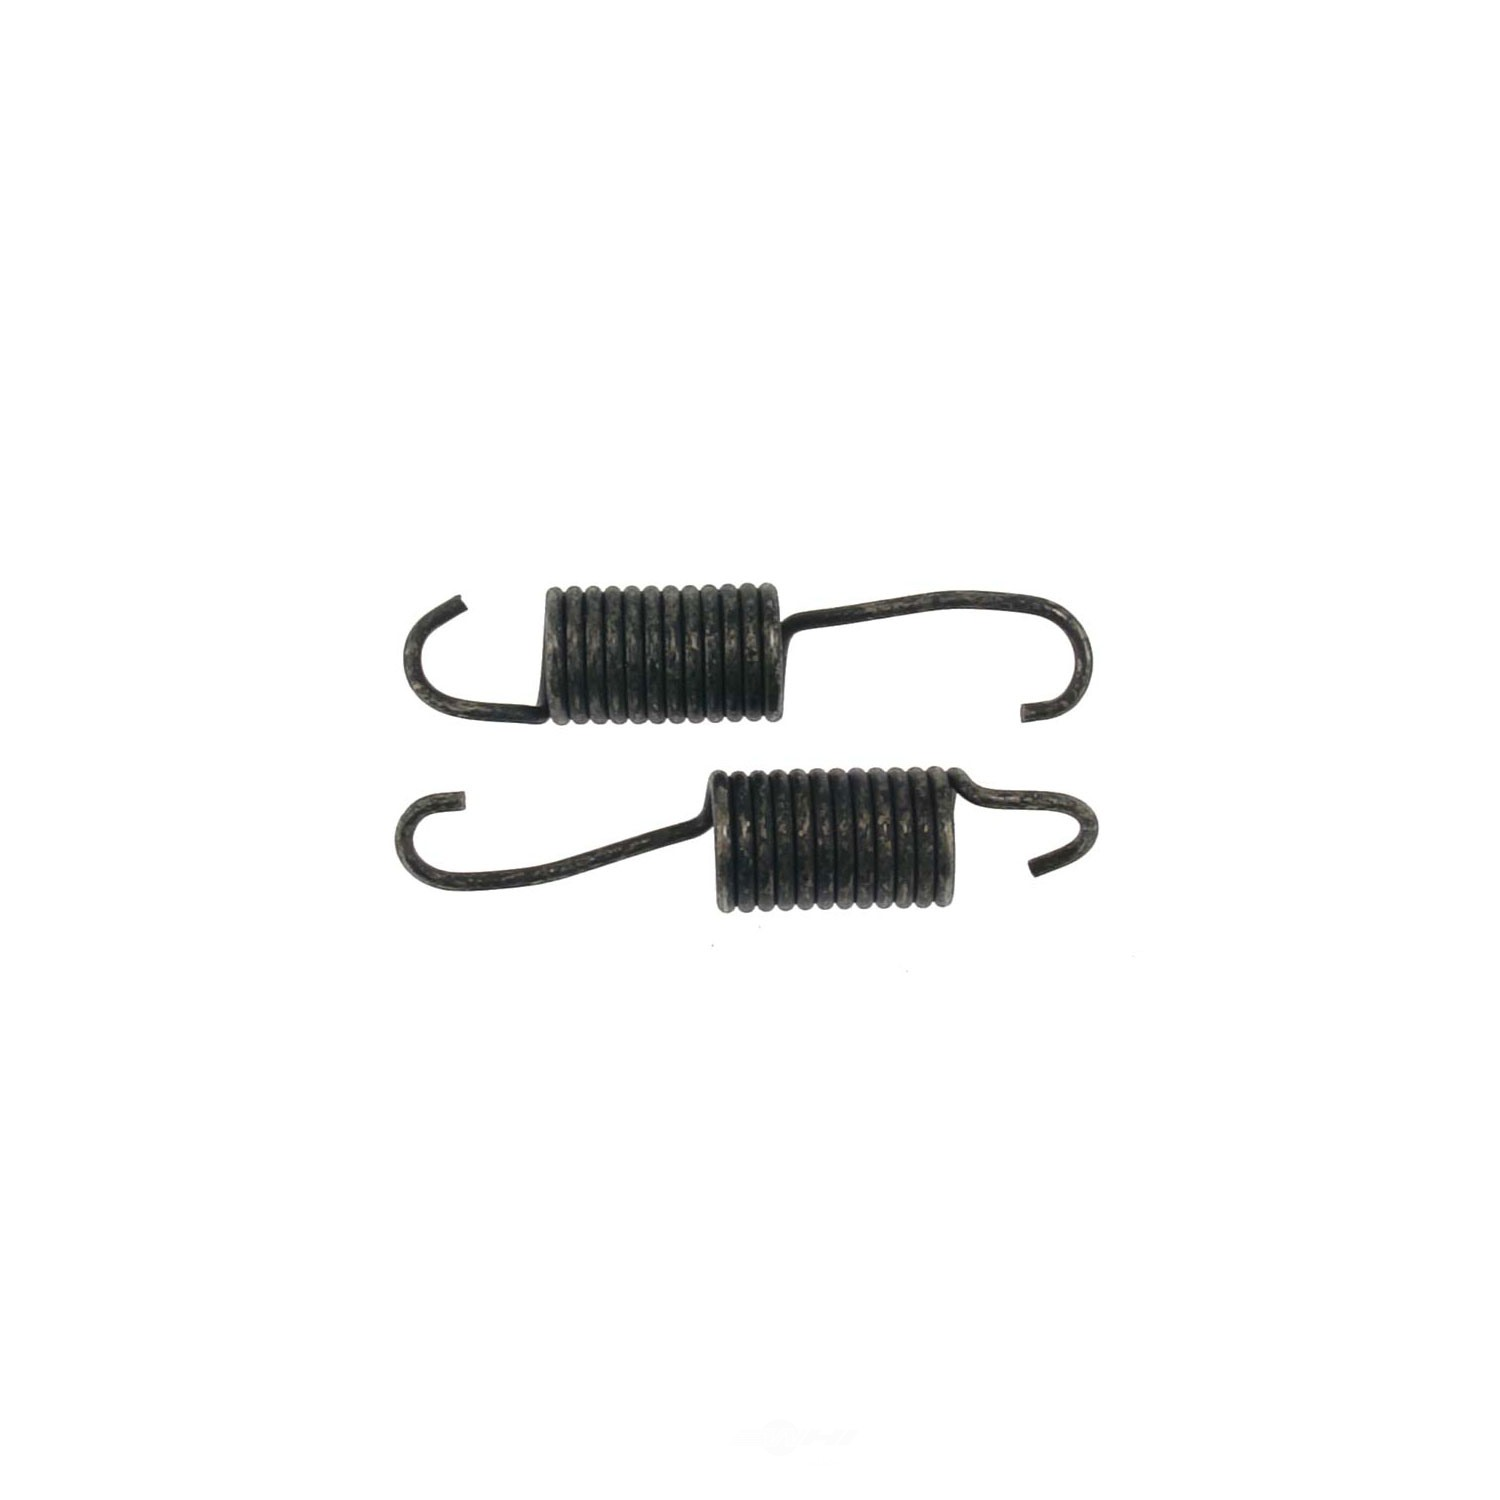 CARLSON QUALITY BRAKE PARTS - Drum Brake Adjusting Spring Kit - CRL H439